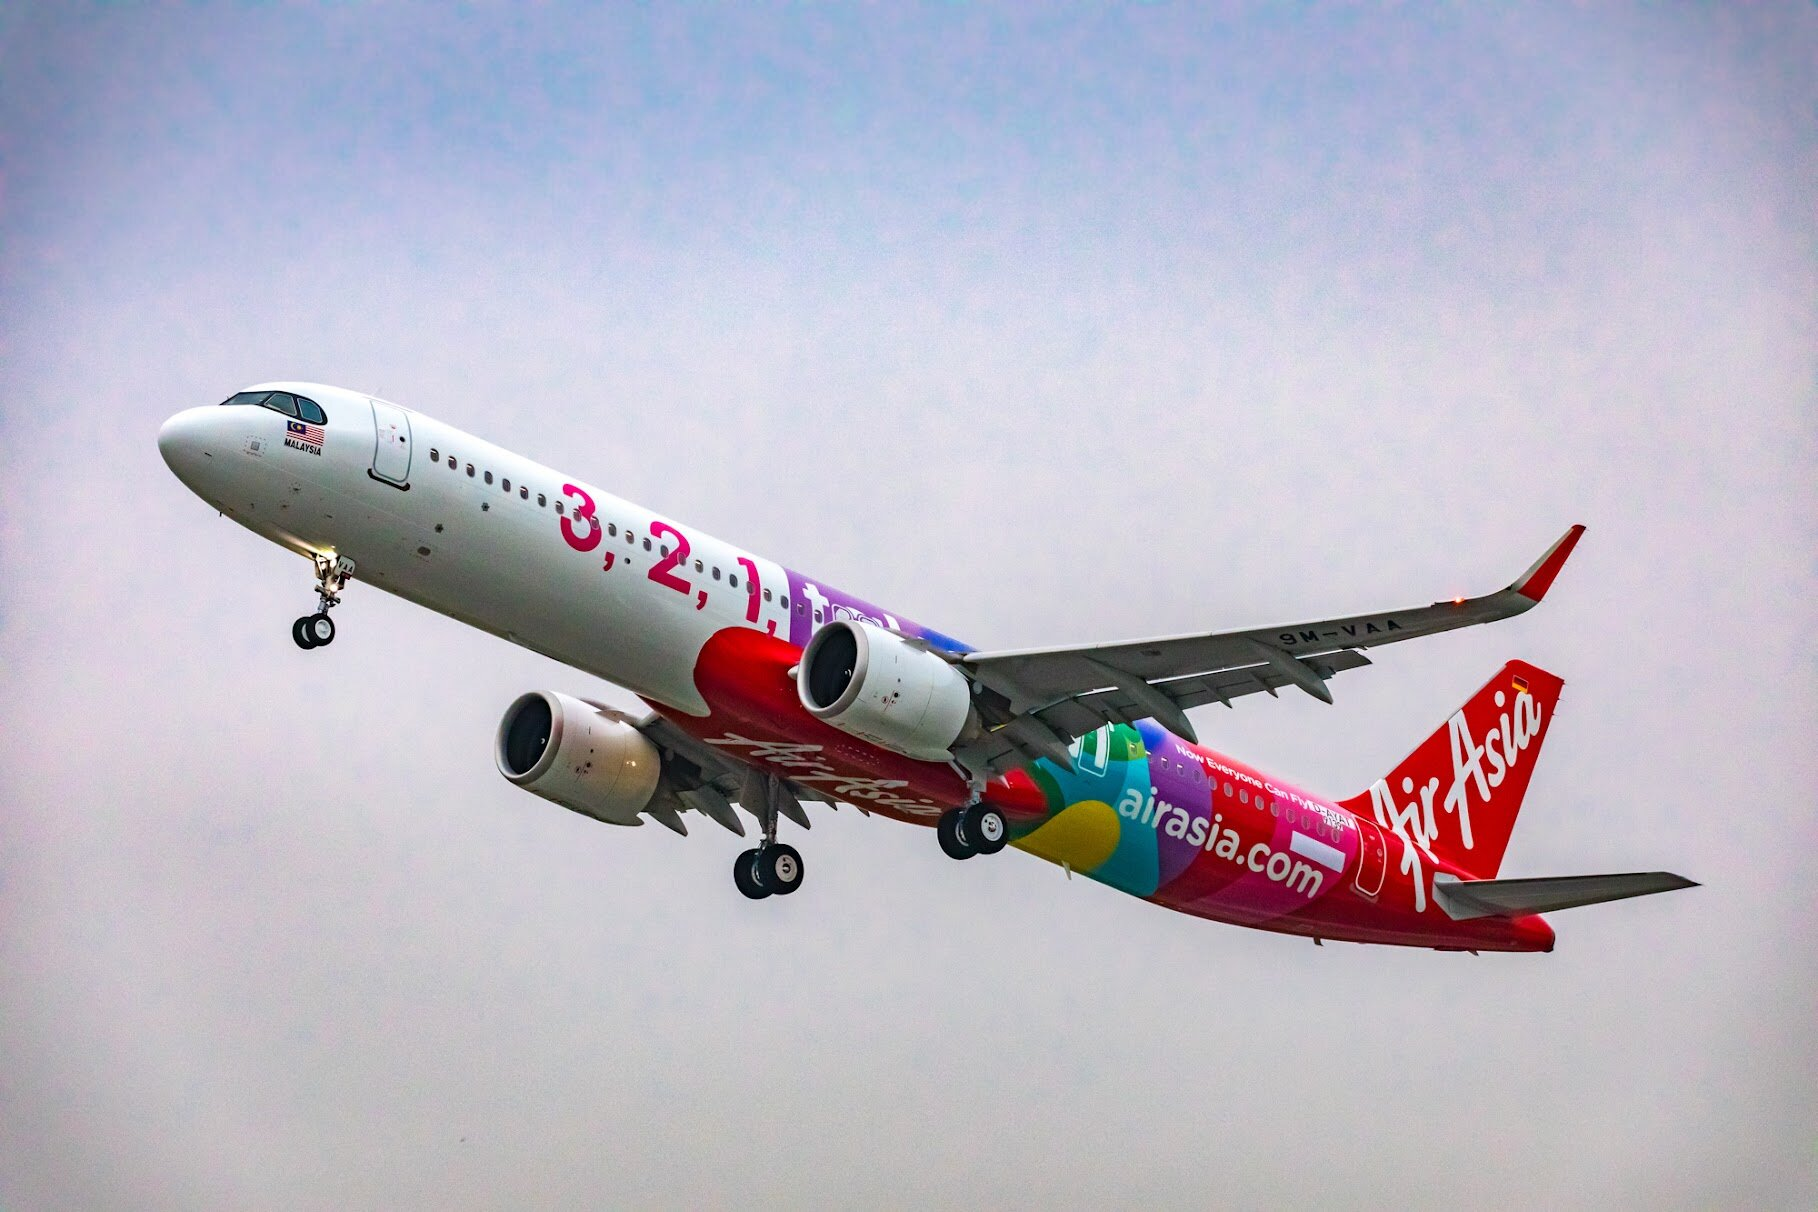 AirAsia reaffirms commitment for fleet migration to Airbus A321neo with conversion of remaining A320 orders